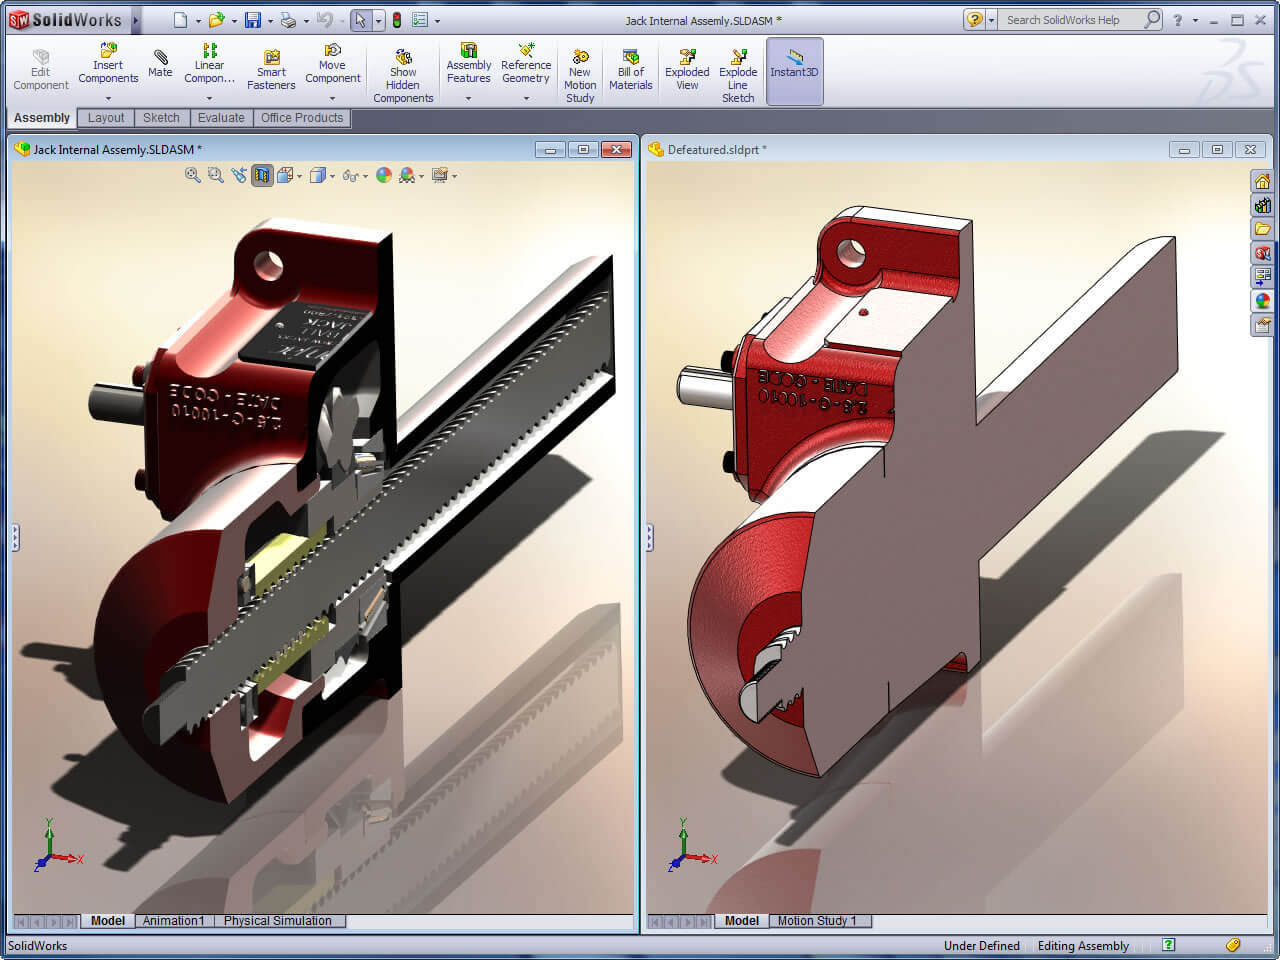 SOLIDWORKS Defeature